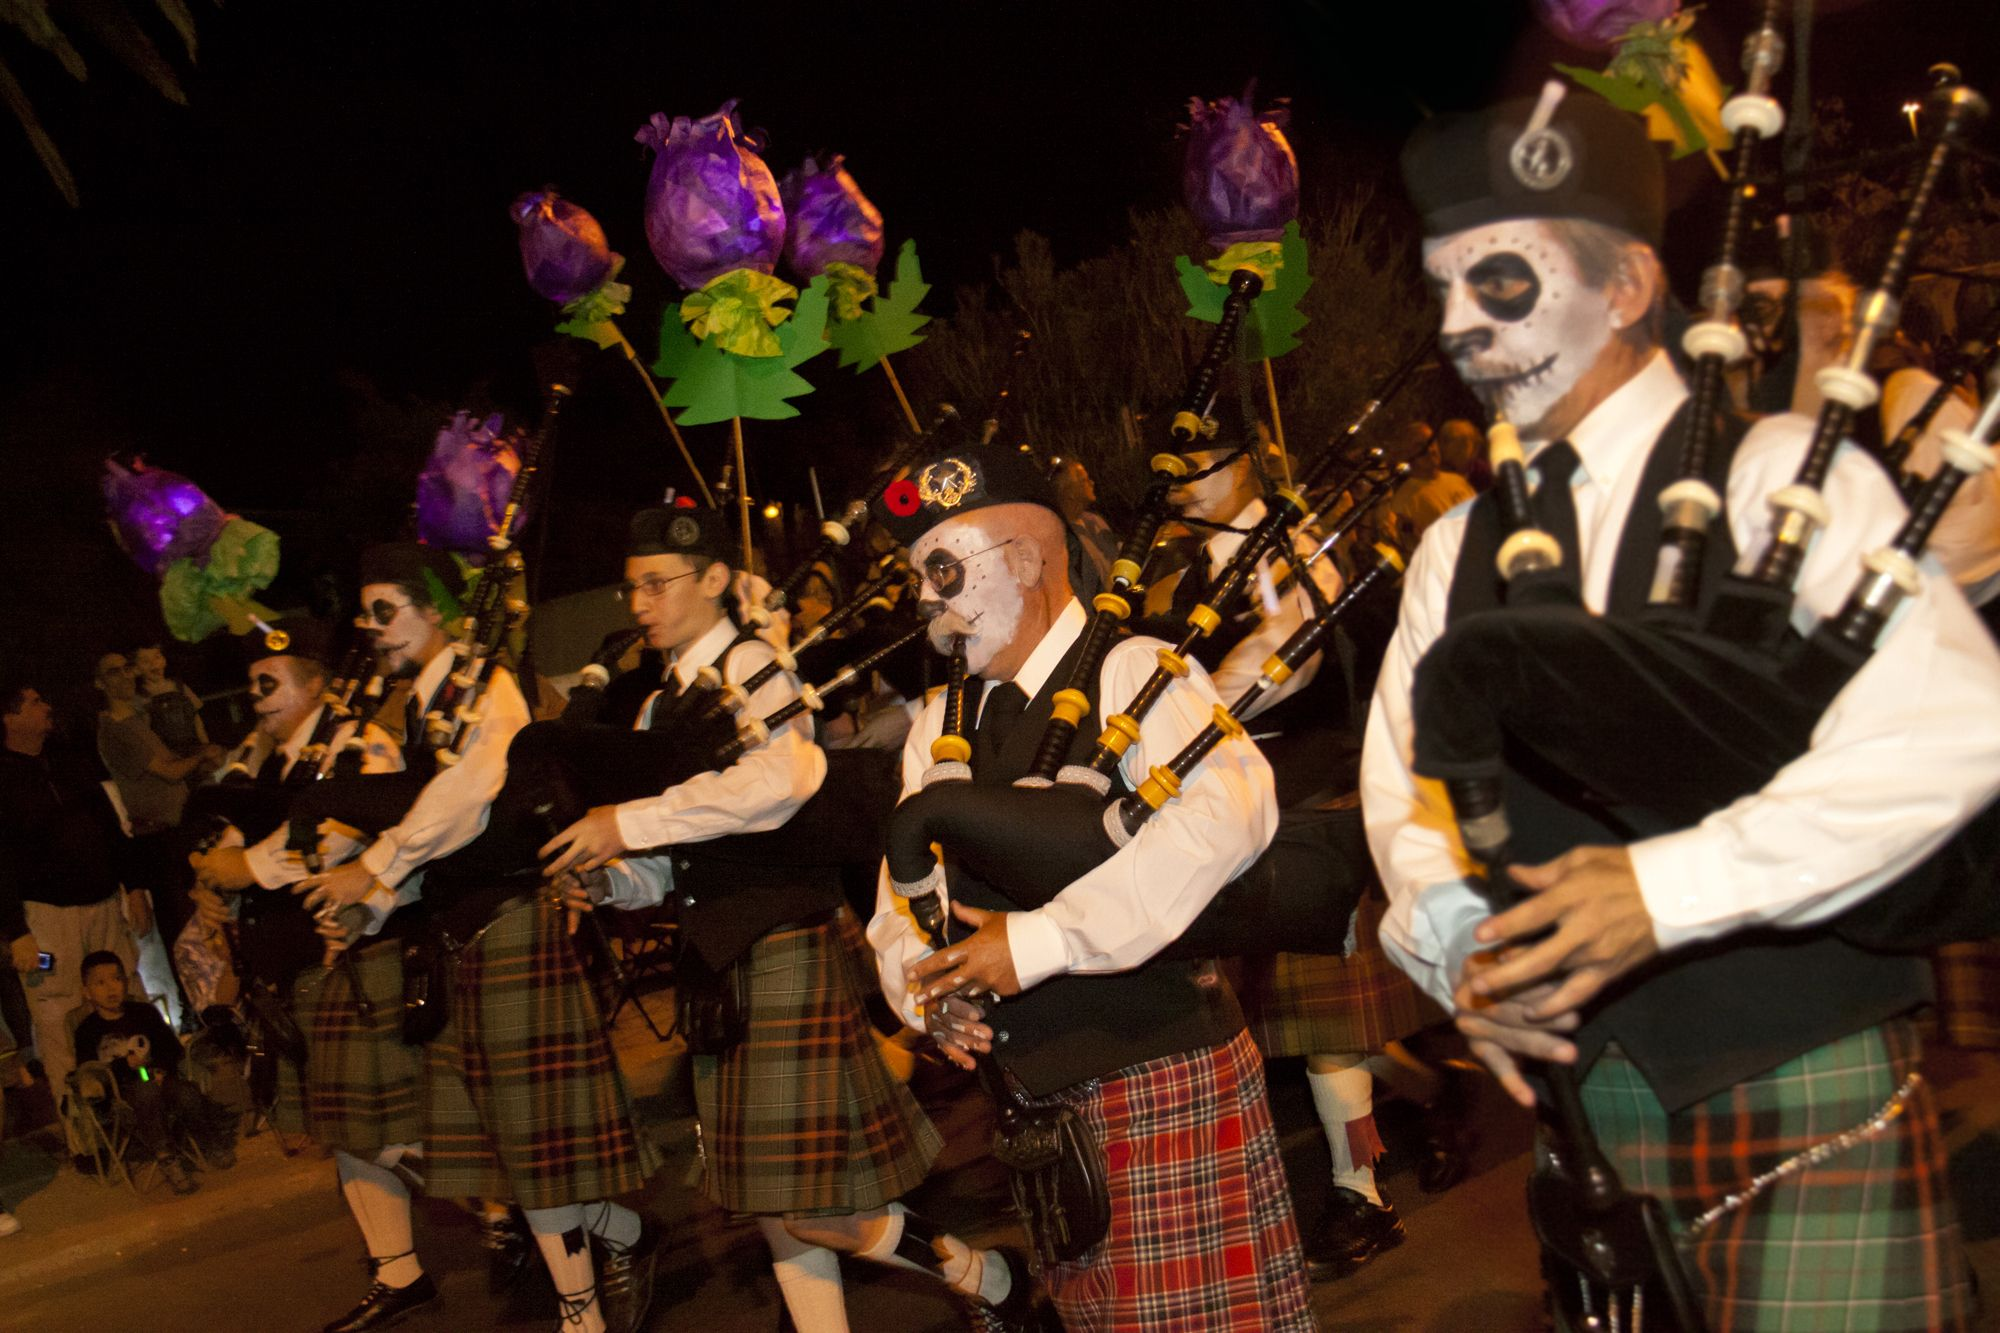 Day Of The Dead Parade Floats Google Search All Souls Meet Guys Men In Kilts